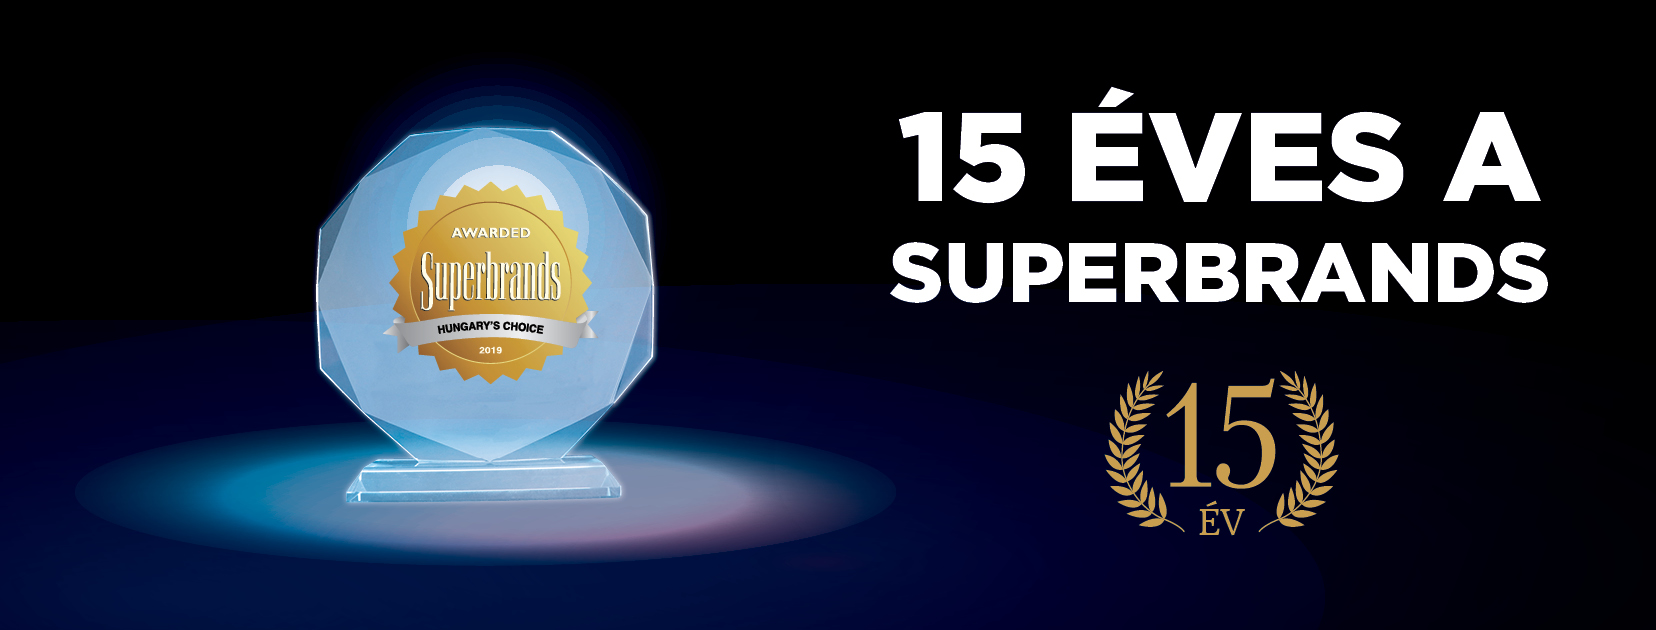 Superbrands Hungary is 15 years old